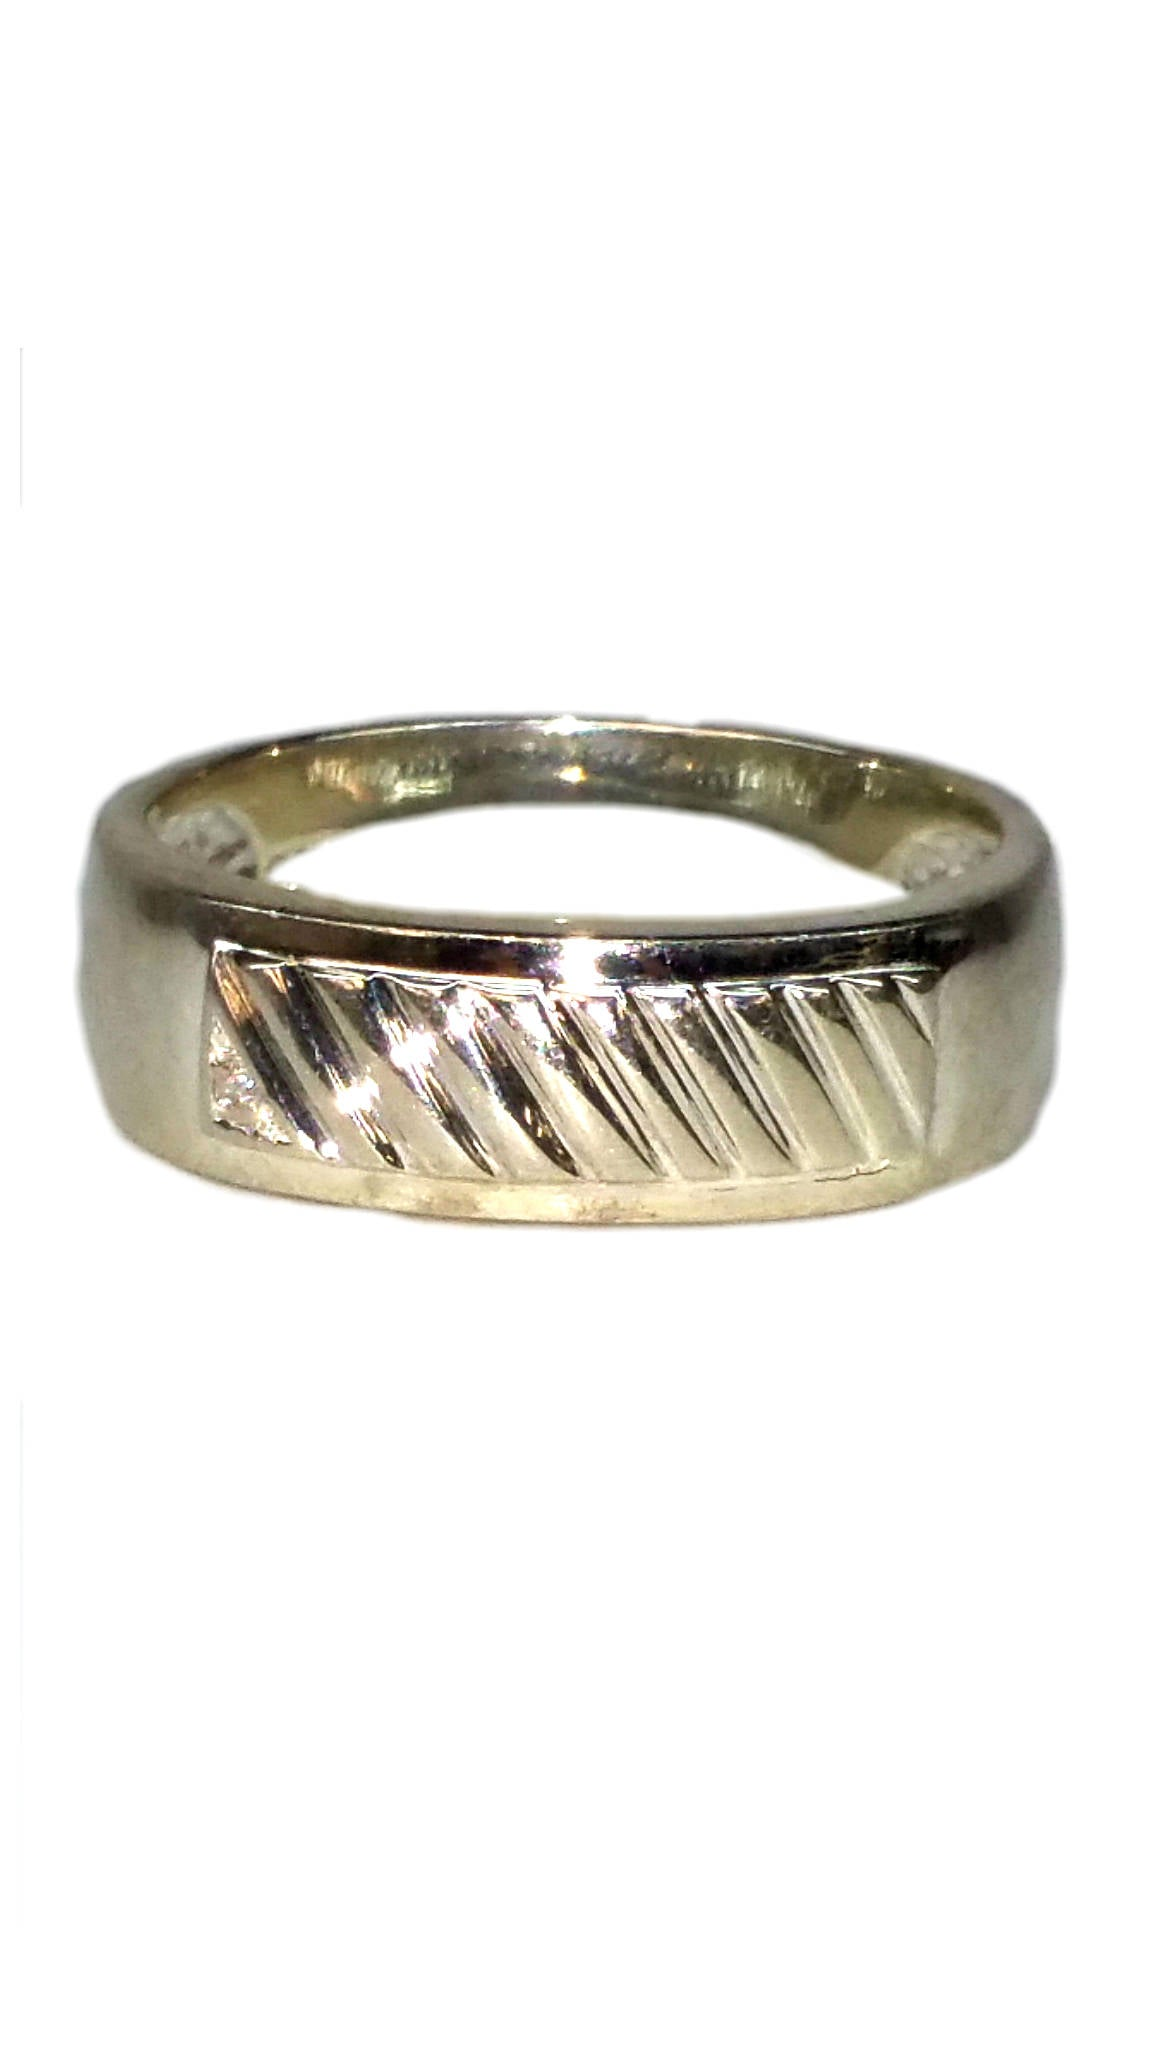 Custom Sterling Silver Ring - [17]